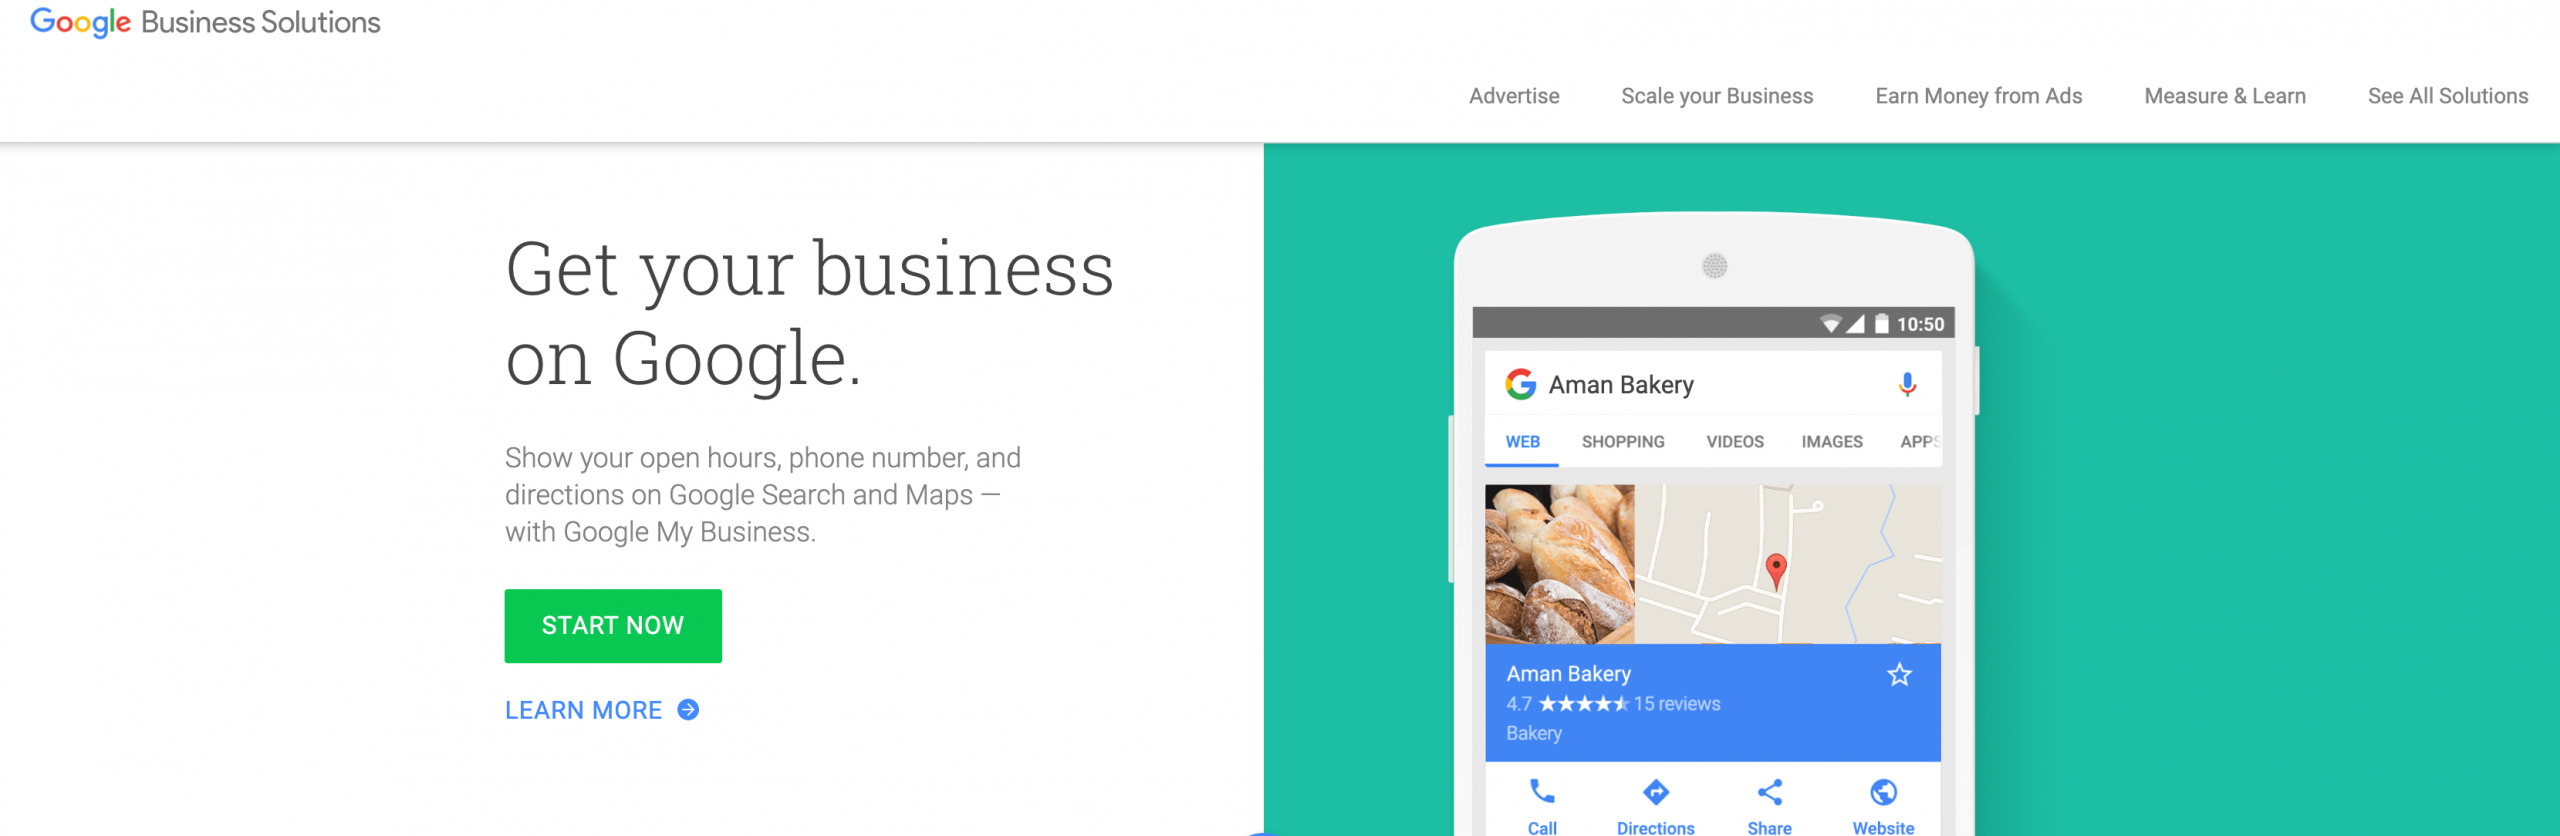 claiming your business on google